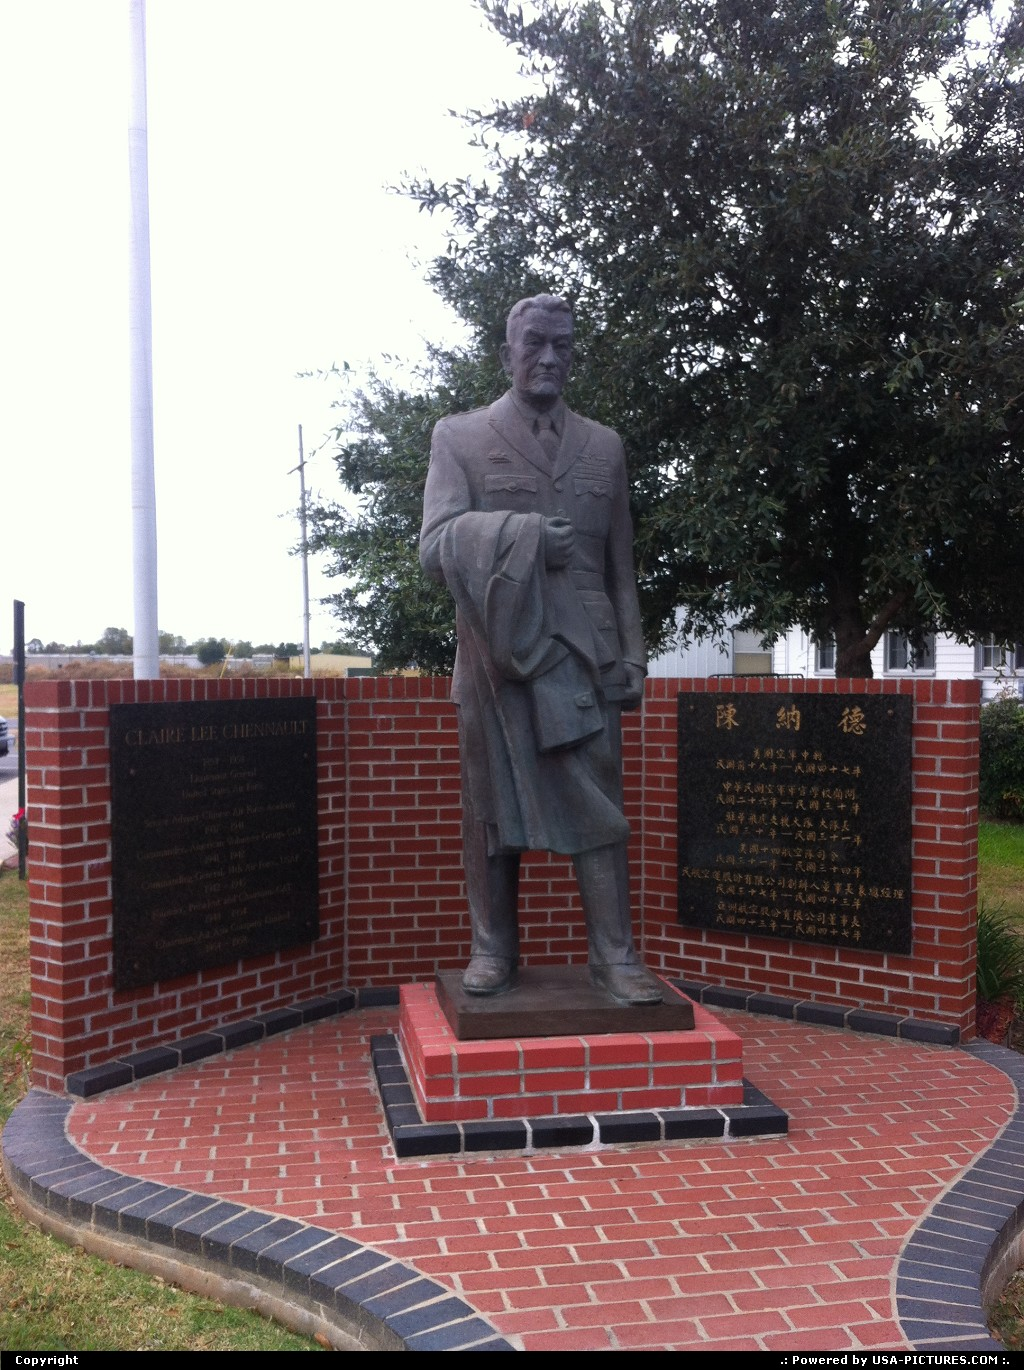 Picture by Bernie: Monroe Louisiana   MEMORIAL